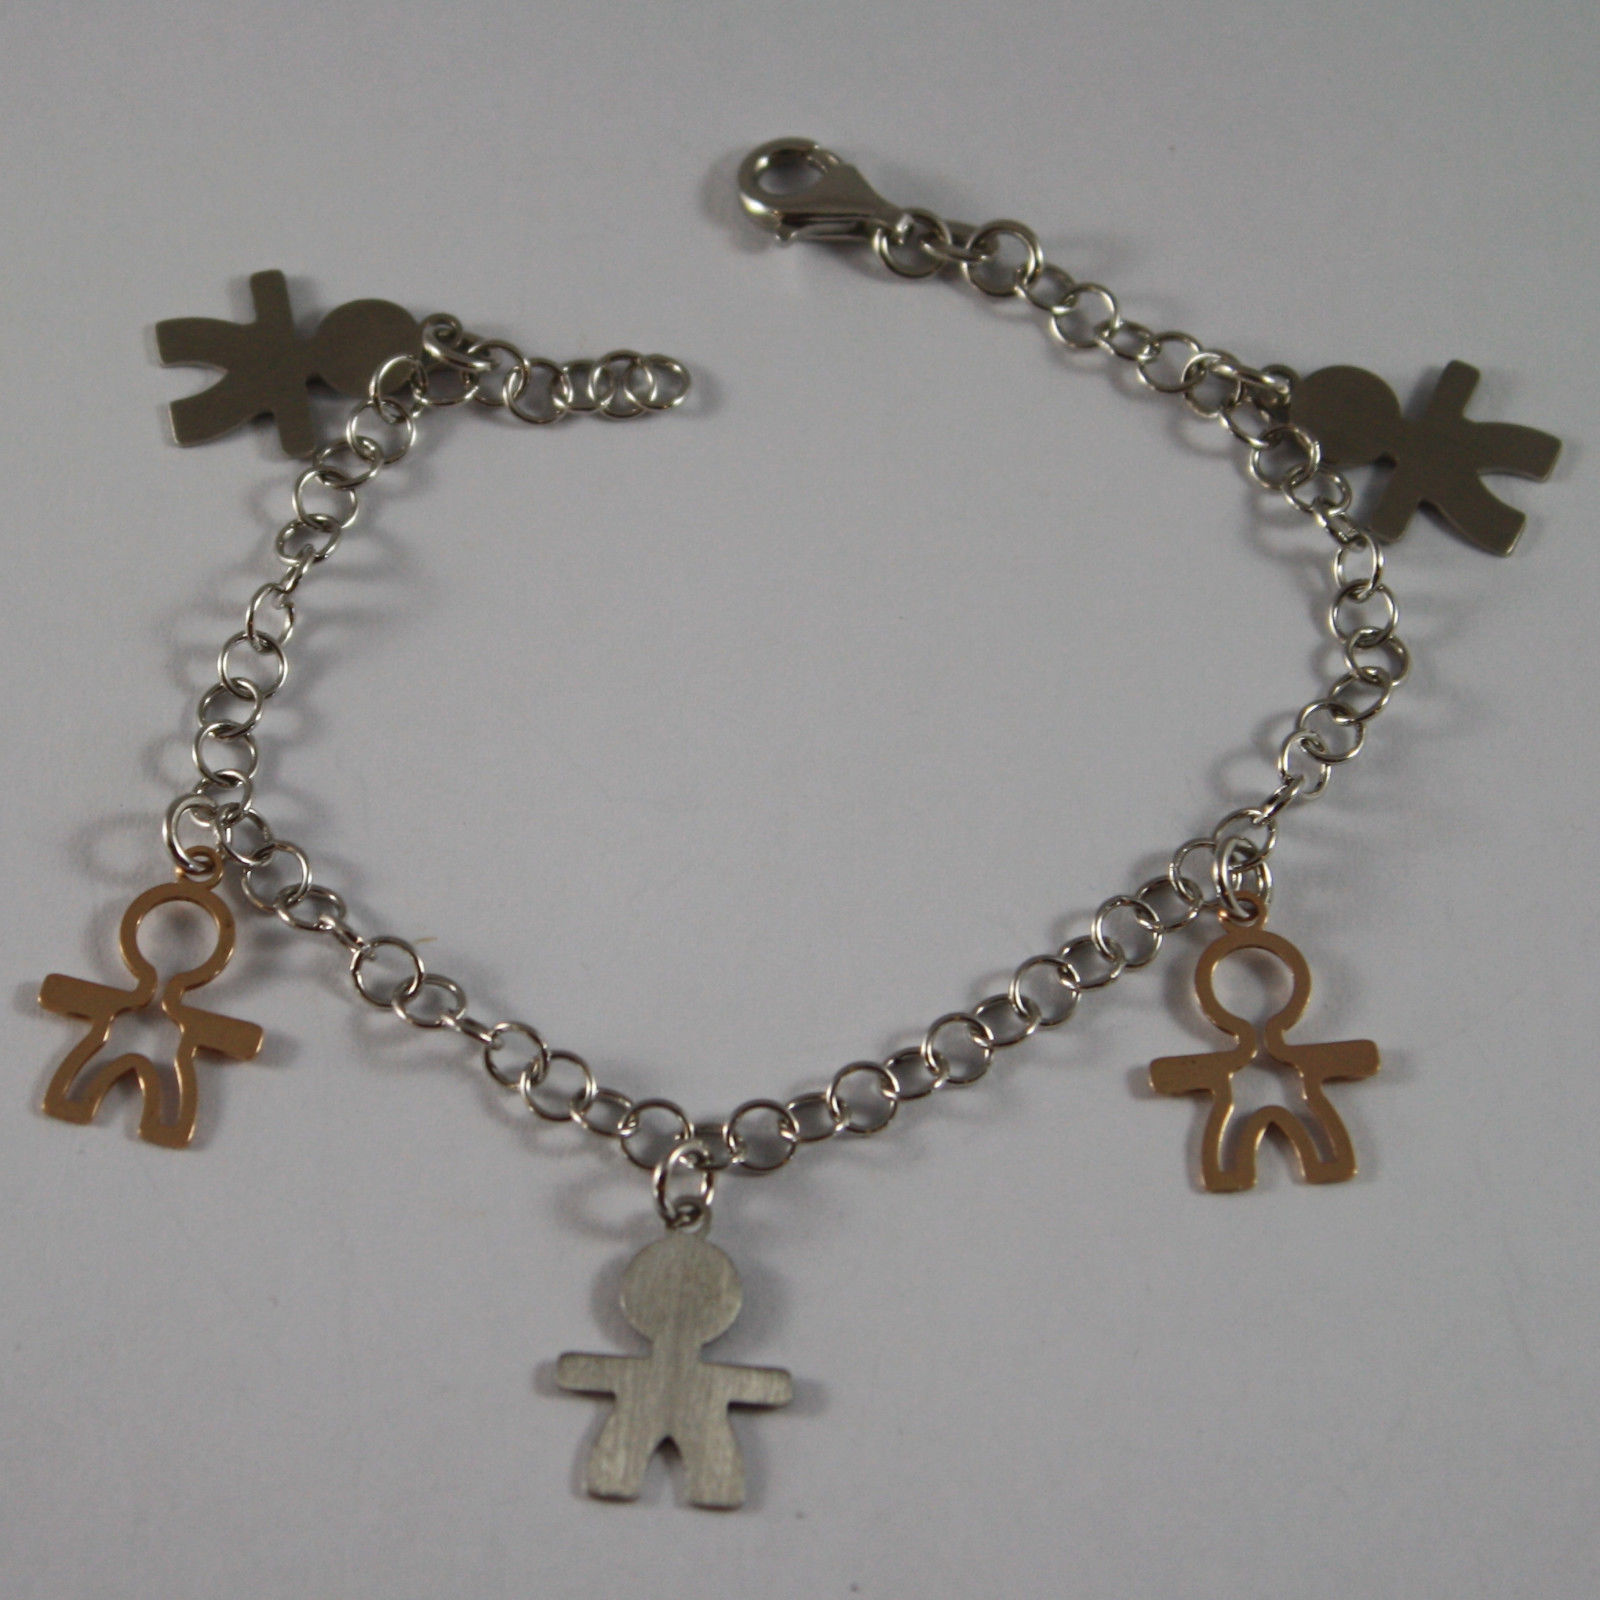 .925 RHODIUM SILVER AND ROSE GOLD PLATED BRACELET WITH A CHILDREN'S CHARM